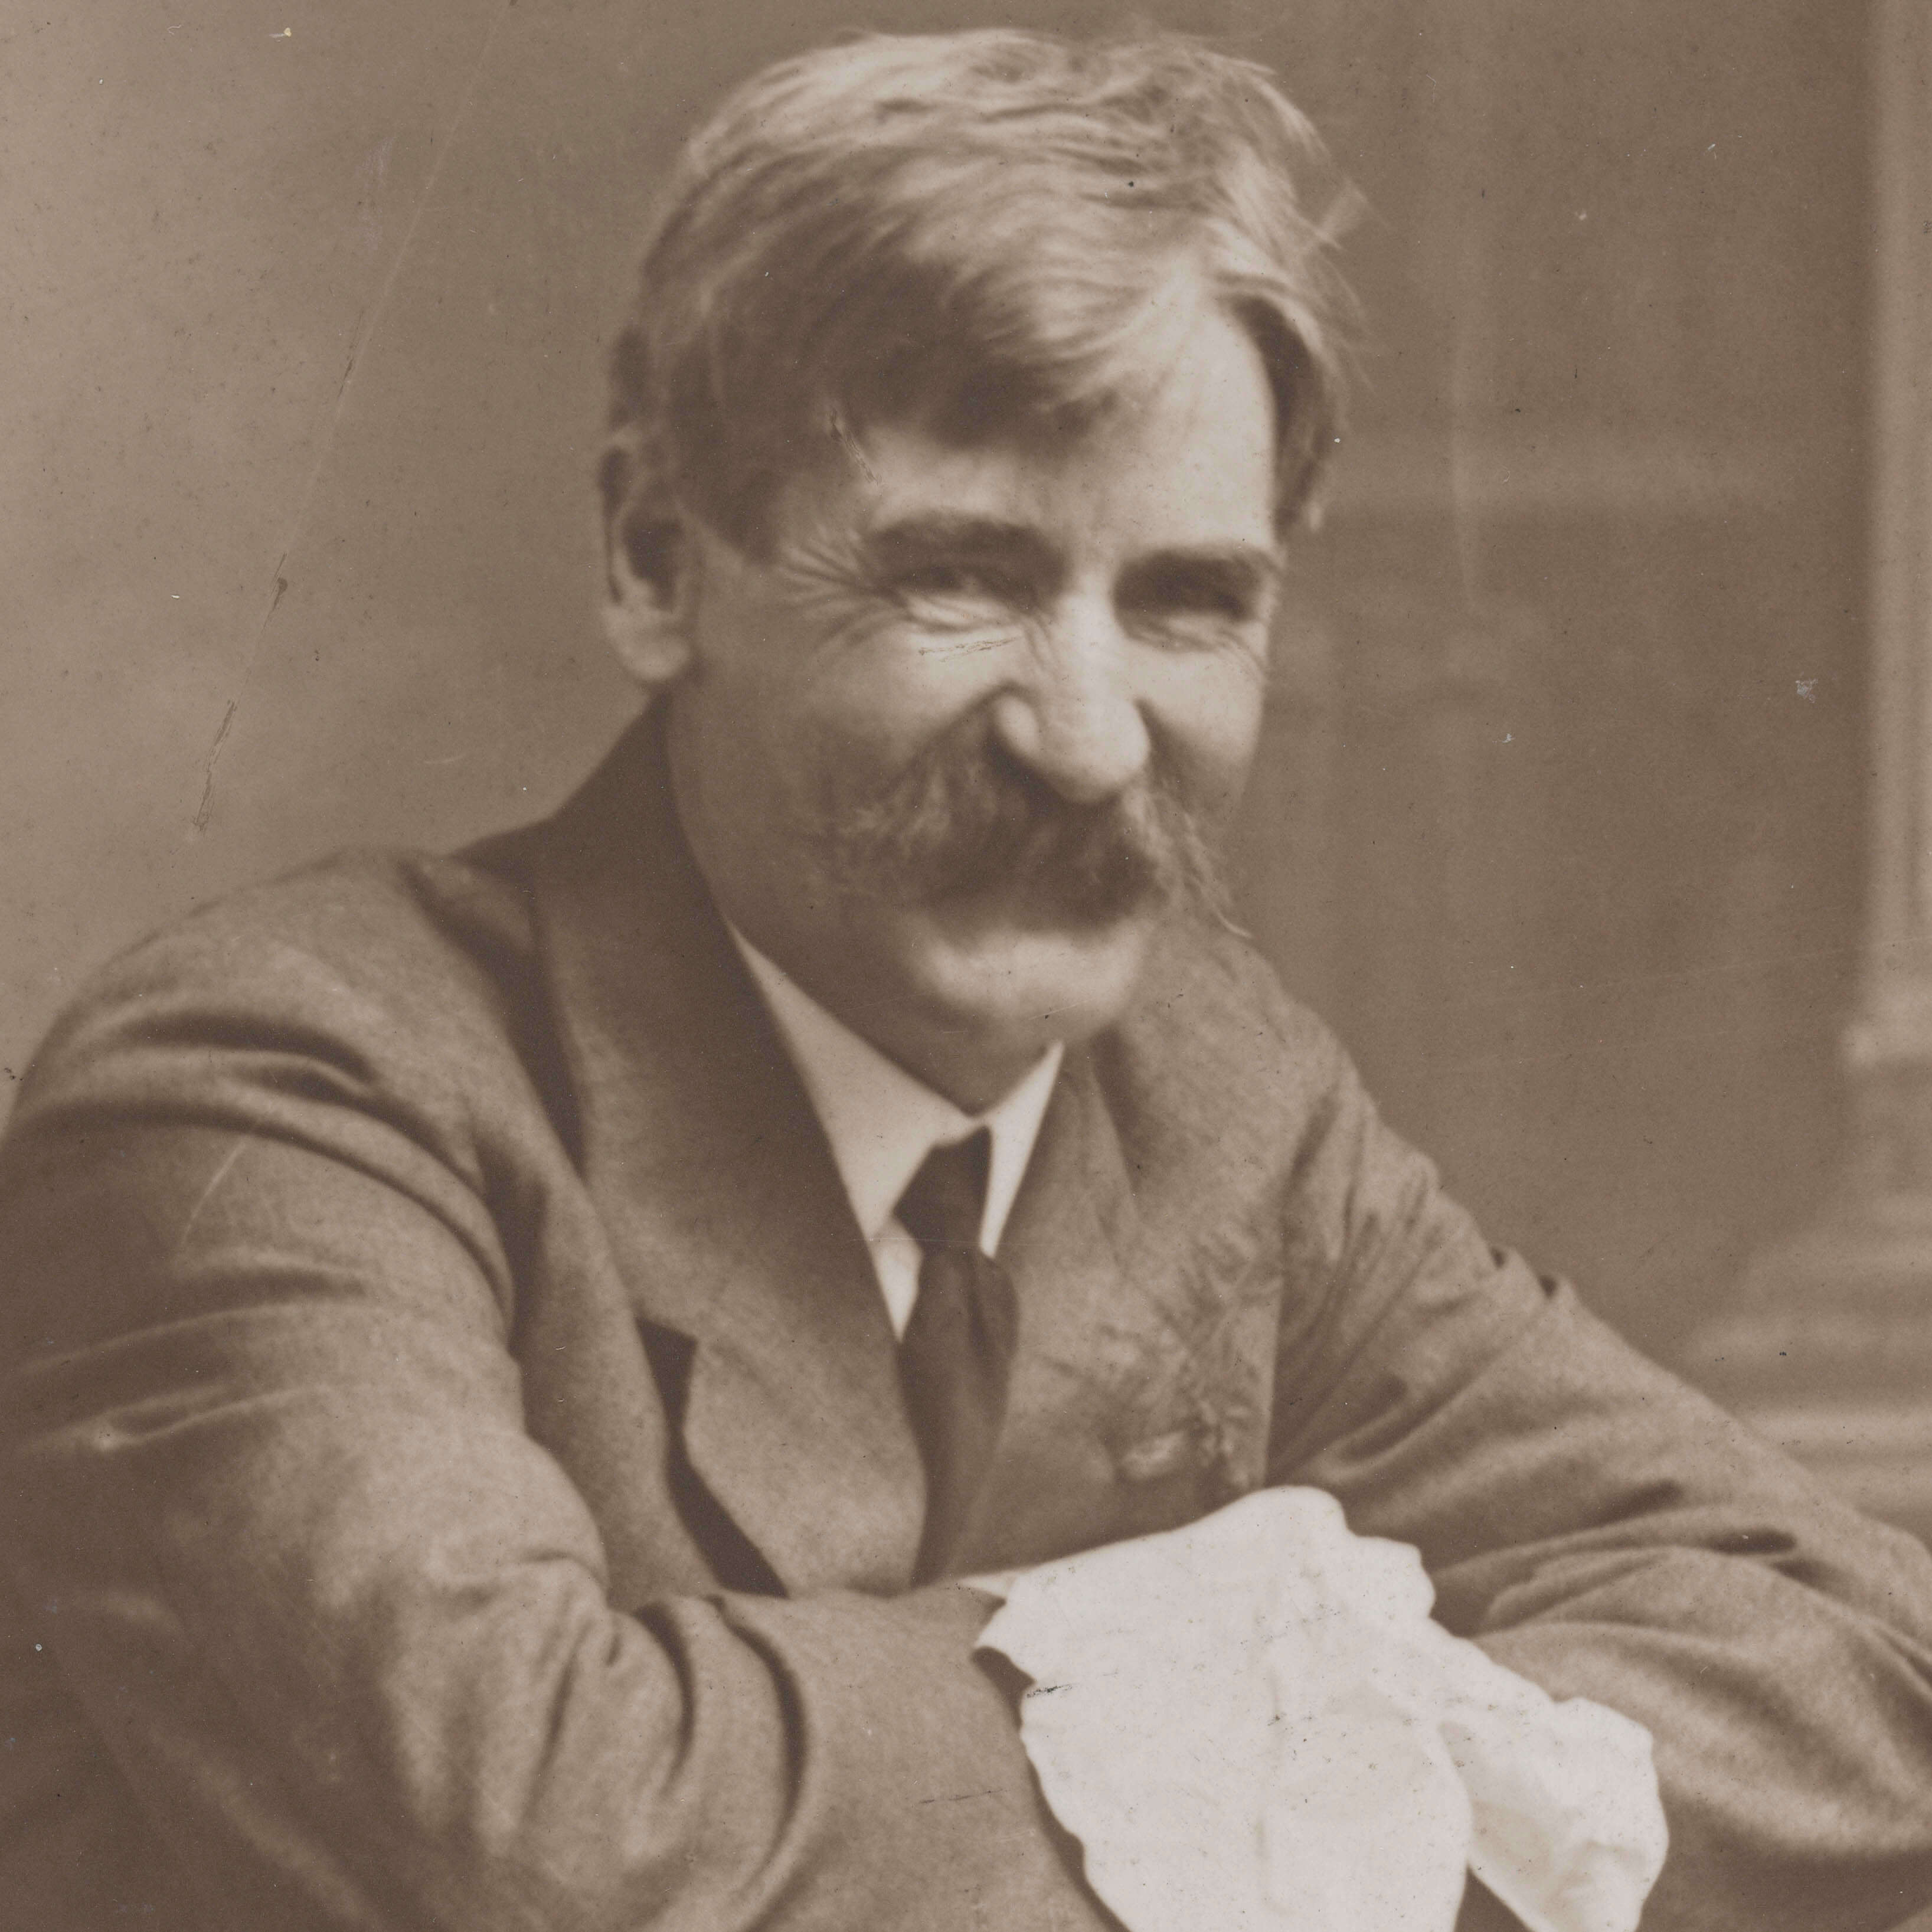 Henry Lawson photo #10295, Henry Lawson image